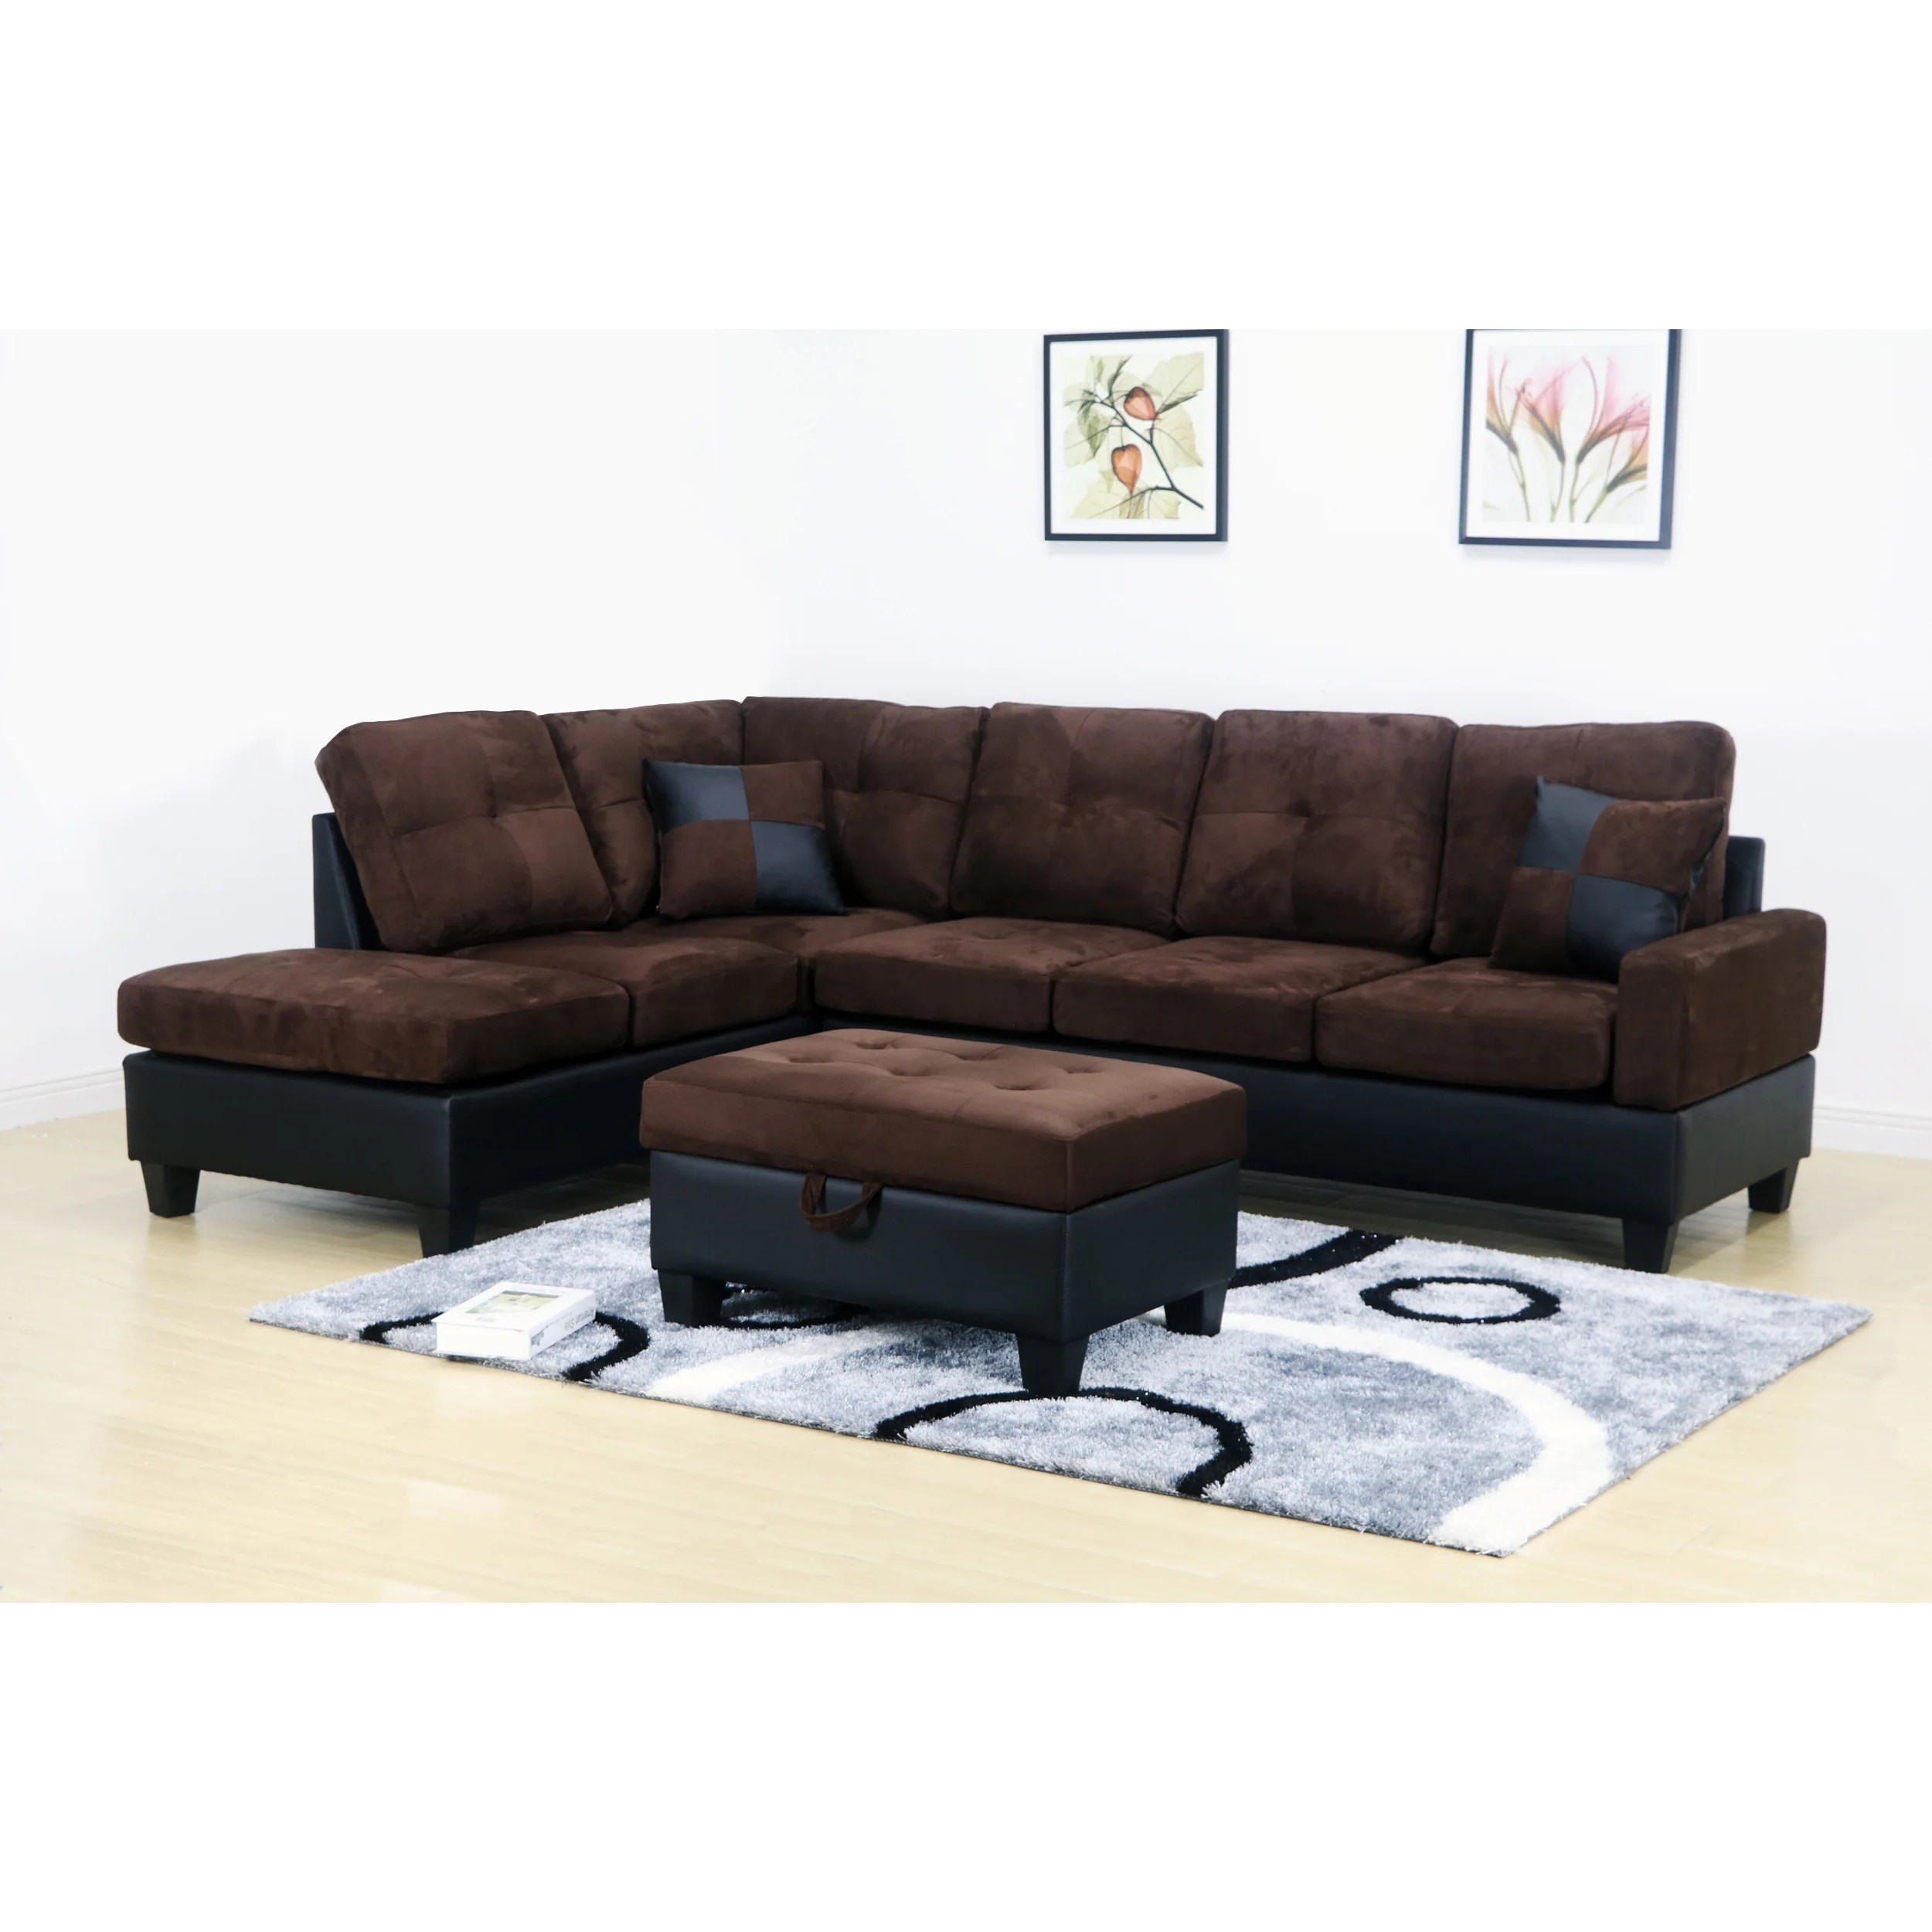 Brown Sectional Sofa Microfiber | Modern Scenic Sofa Red And Sofas ...